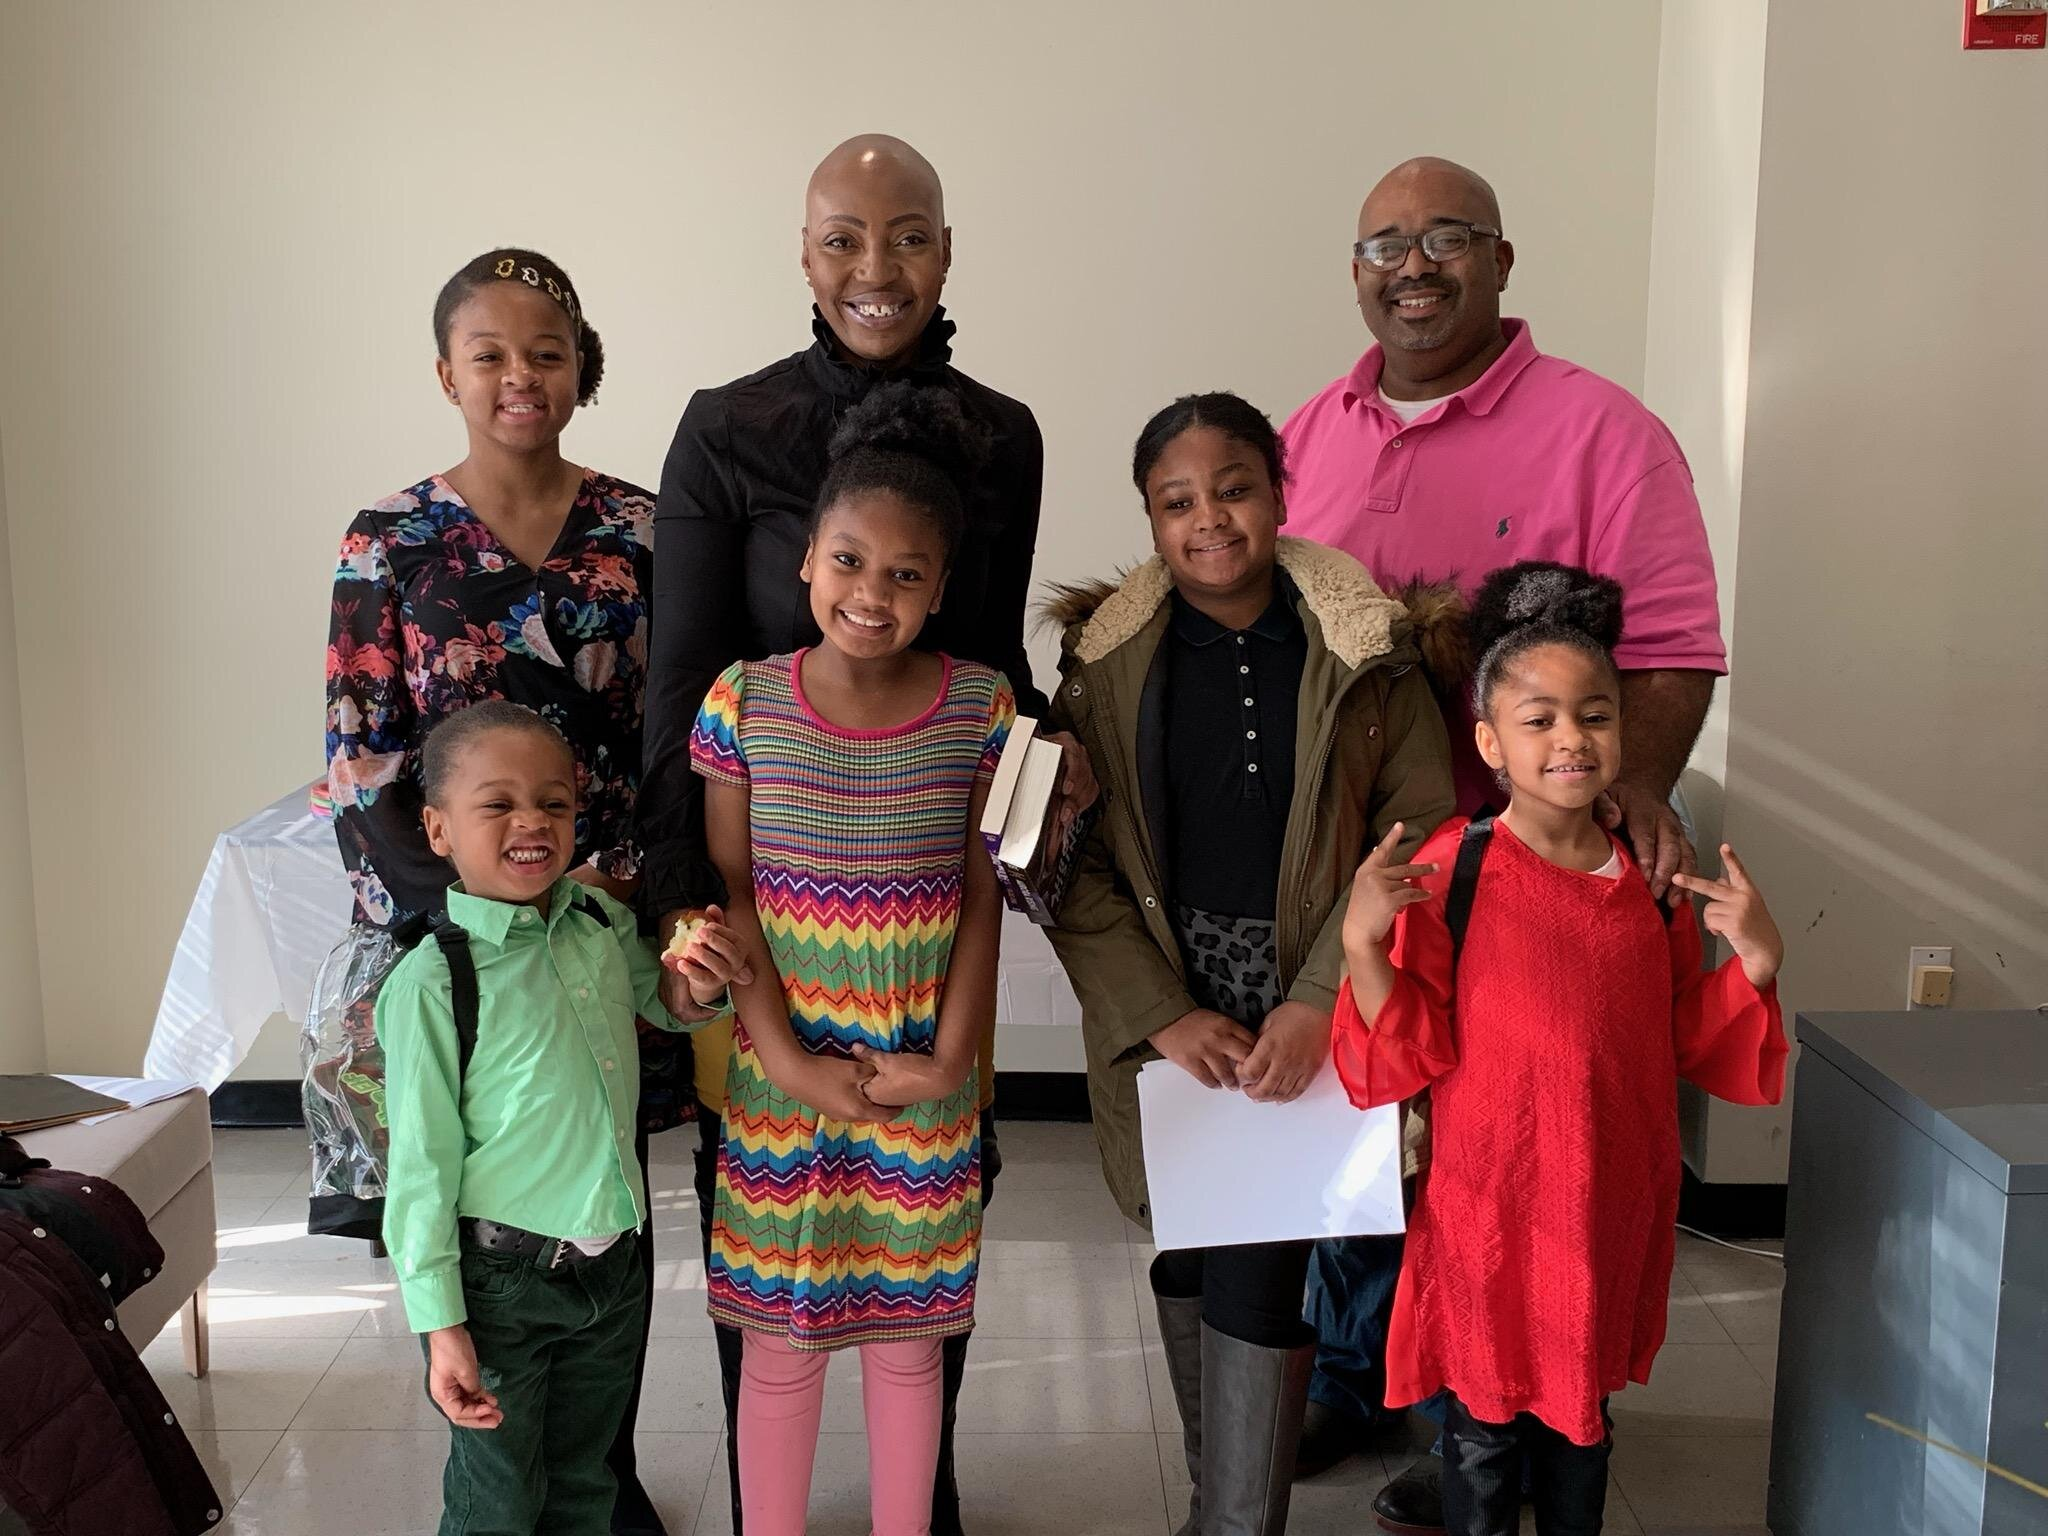 Yolanda Ferguson and her husband finalized the adoption of five children: Divinity, Darling, Daniel, Jeremiah and David Angela. Photo courtesy of ACS.